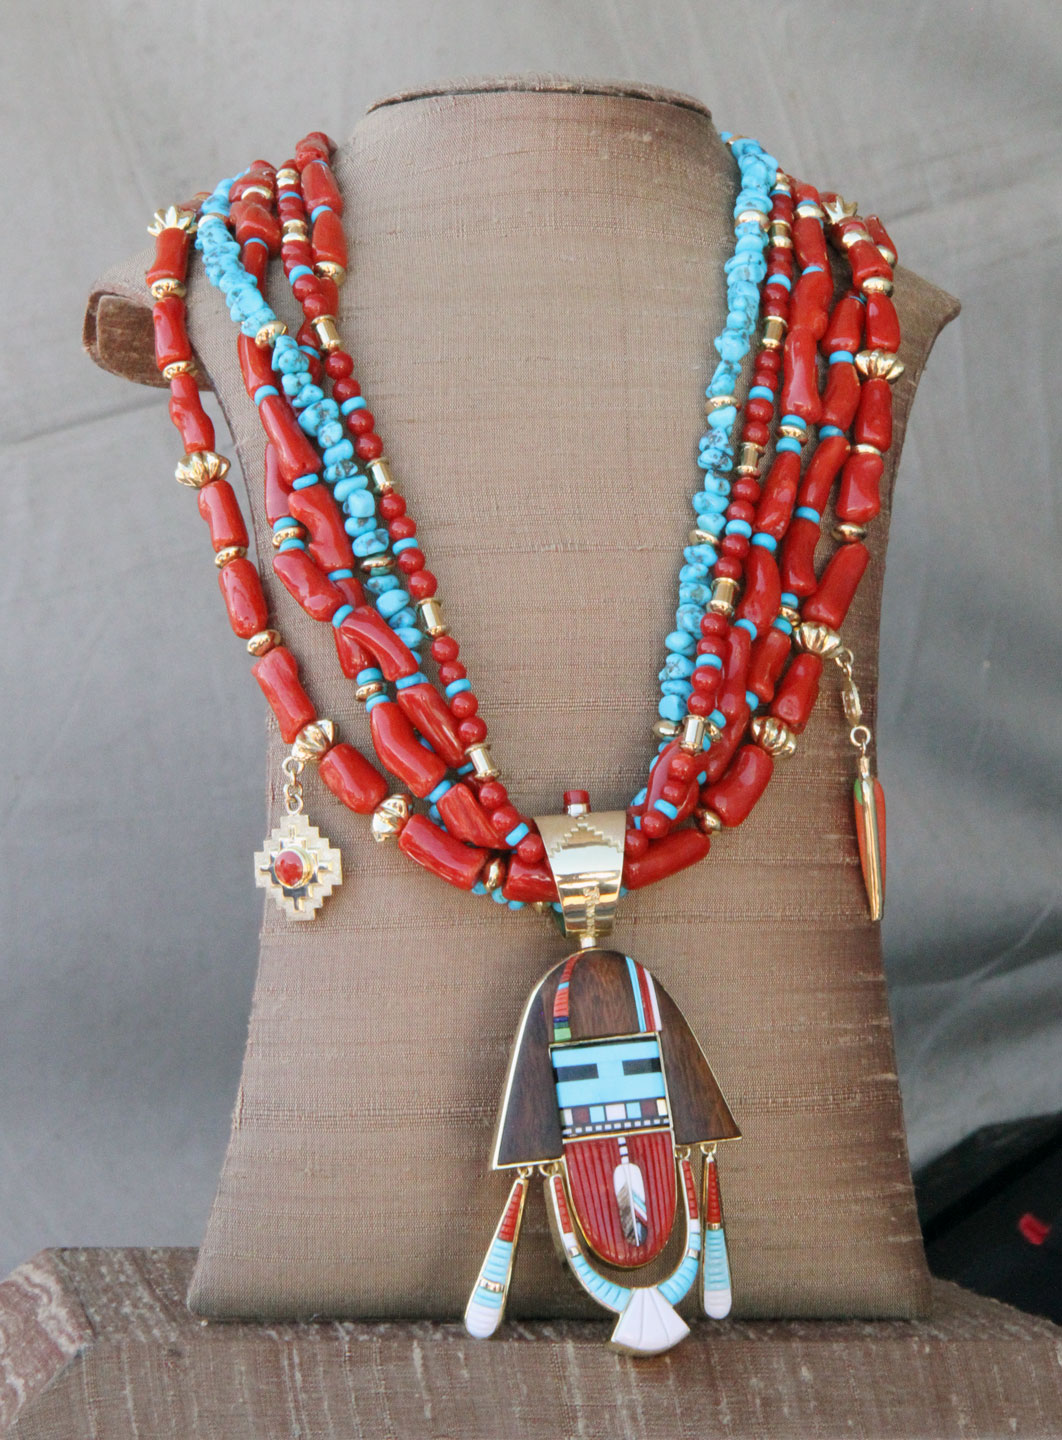 PENDANT by Jesse Monongya, strung on a coral and turquoise bead necklace. Monongya finished this pendant in 2018.